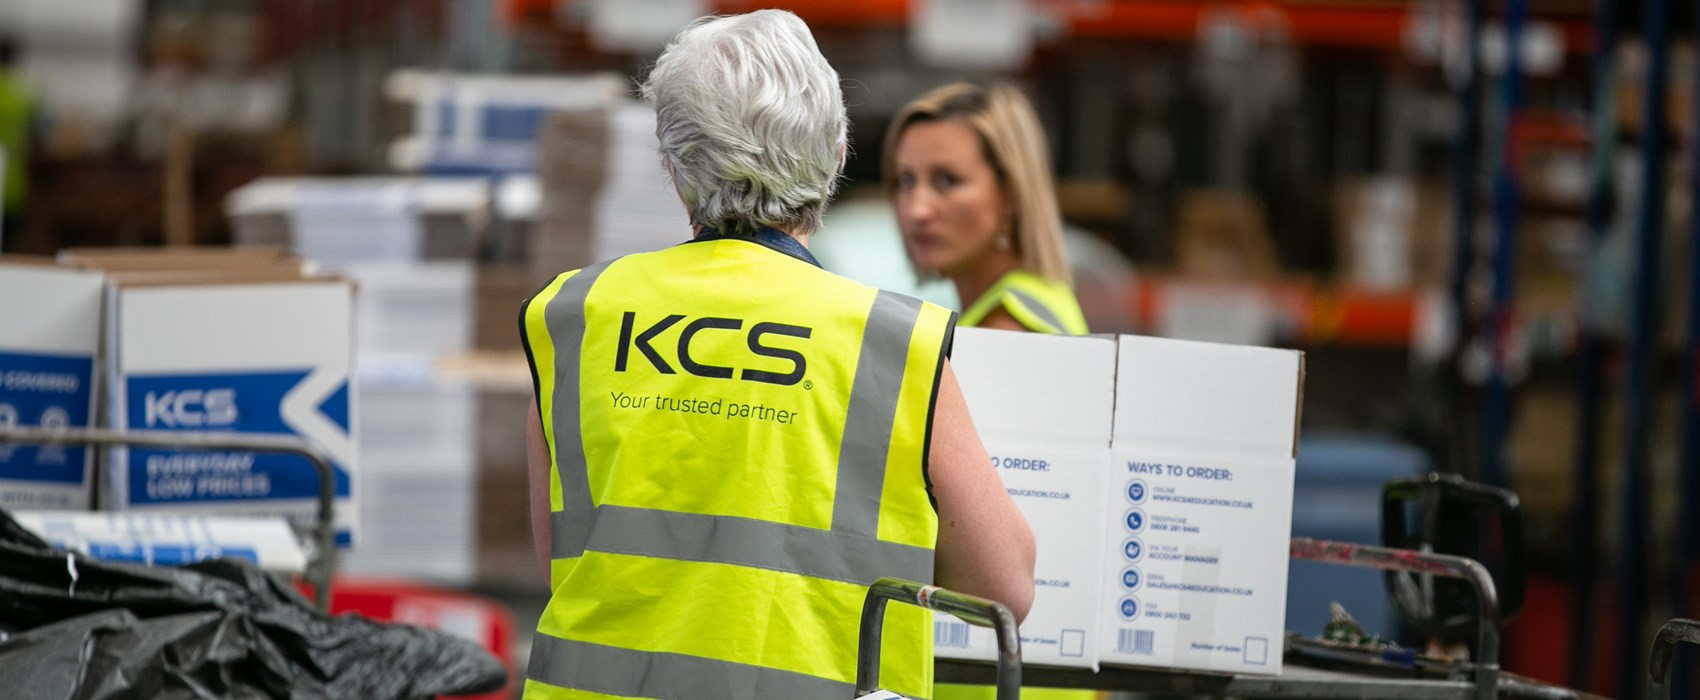 KCS Warehouse